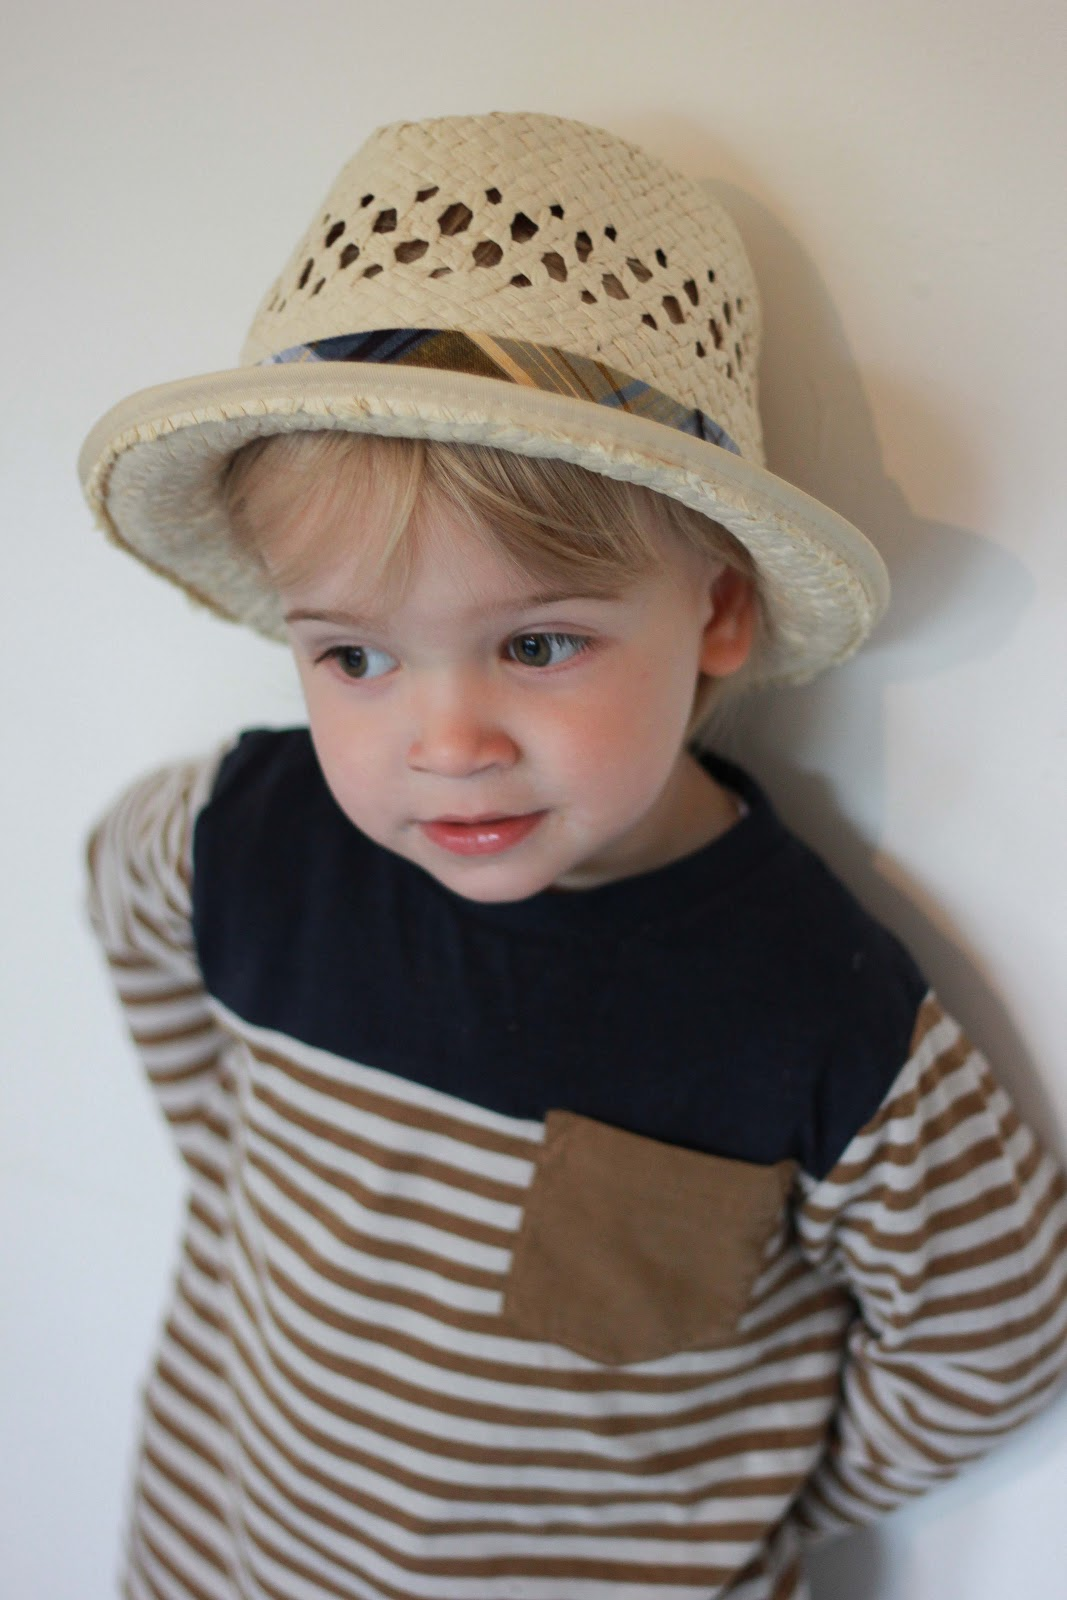 Boys' straw lifeguard hat fashioned with a woven straw design, featuring a front leather debussed logo, and finished with an adjustable chin strap. more More like this Find other Men's Hats.